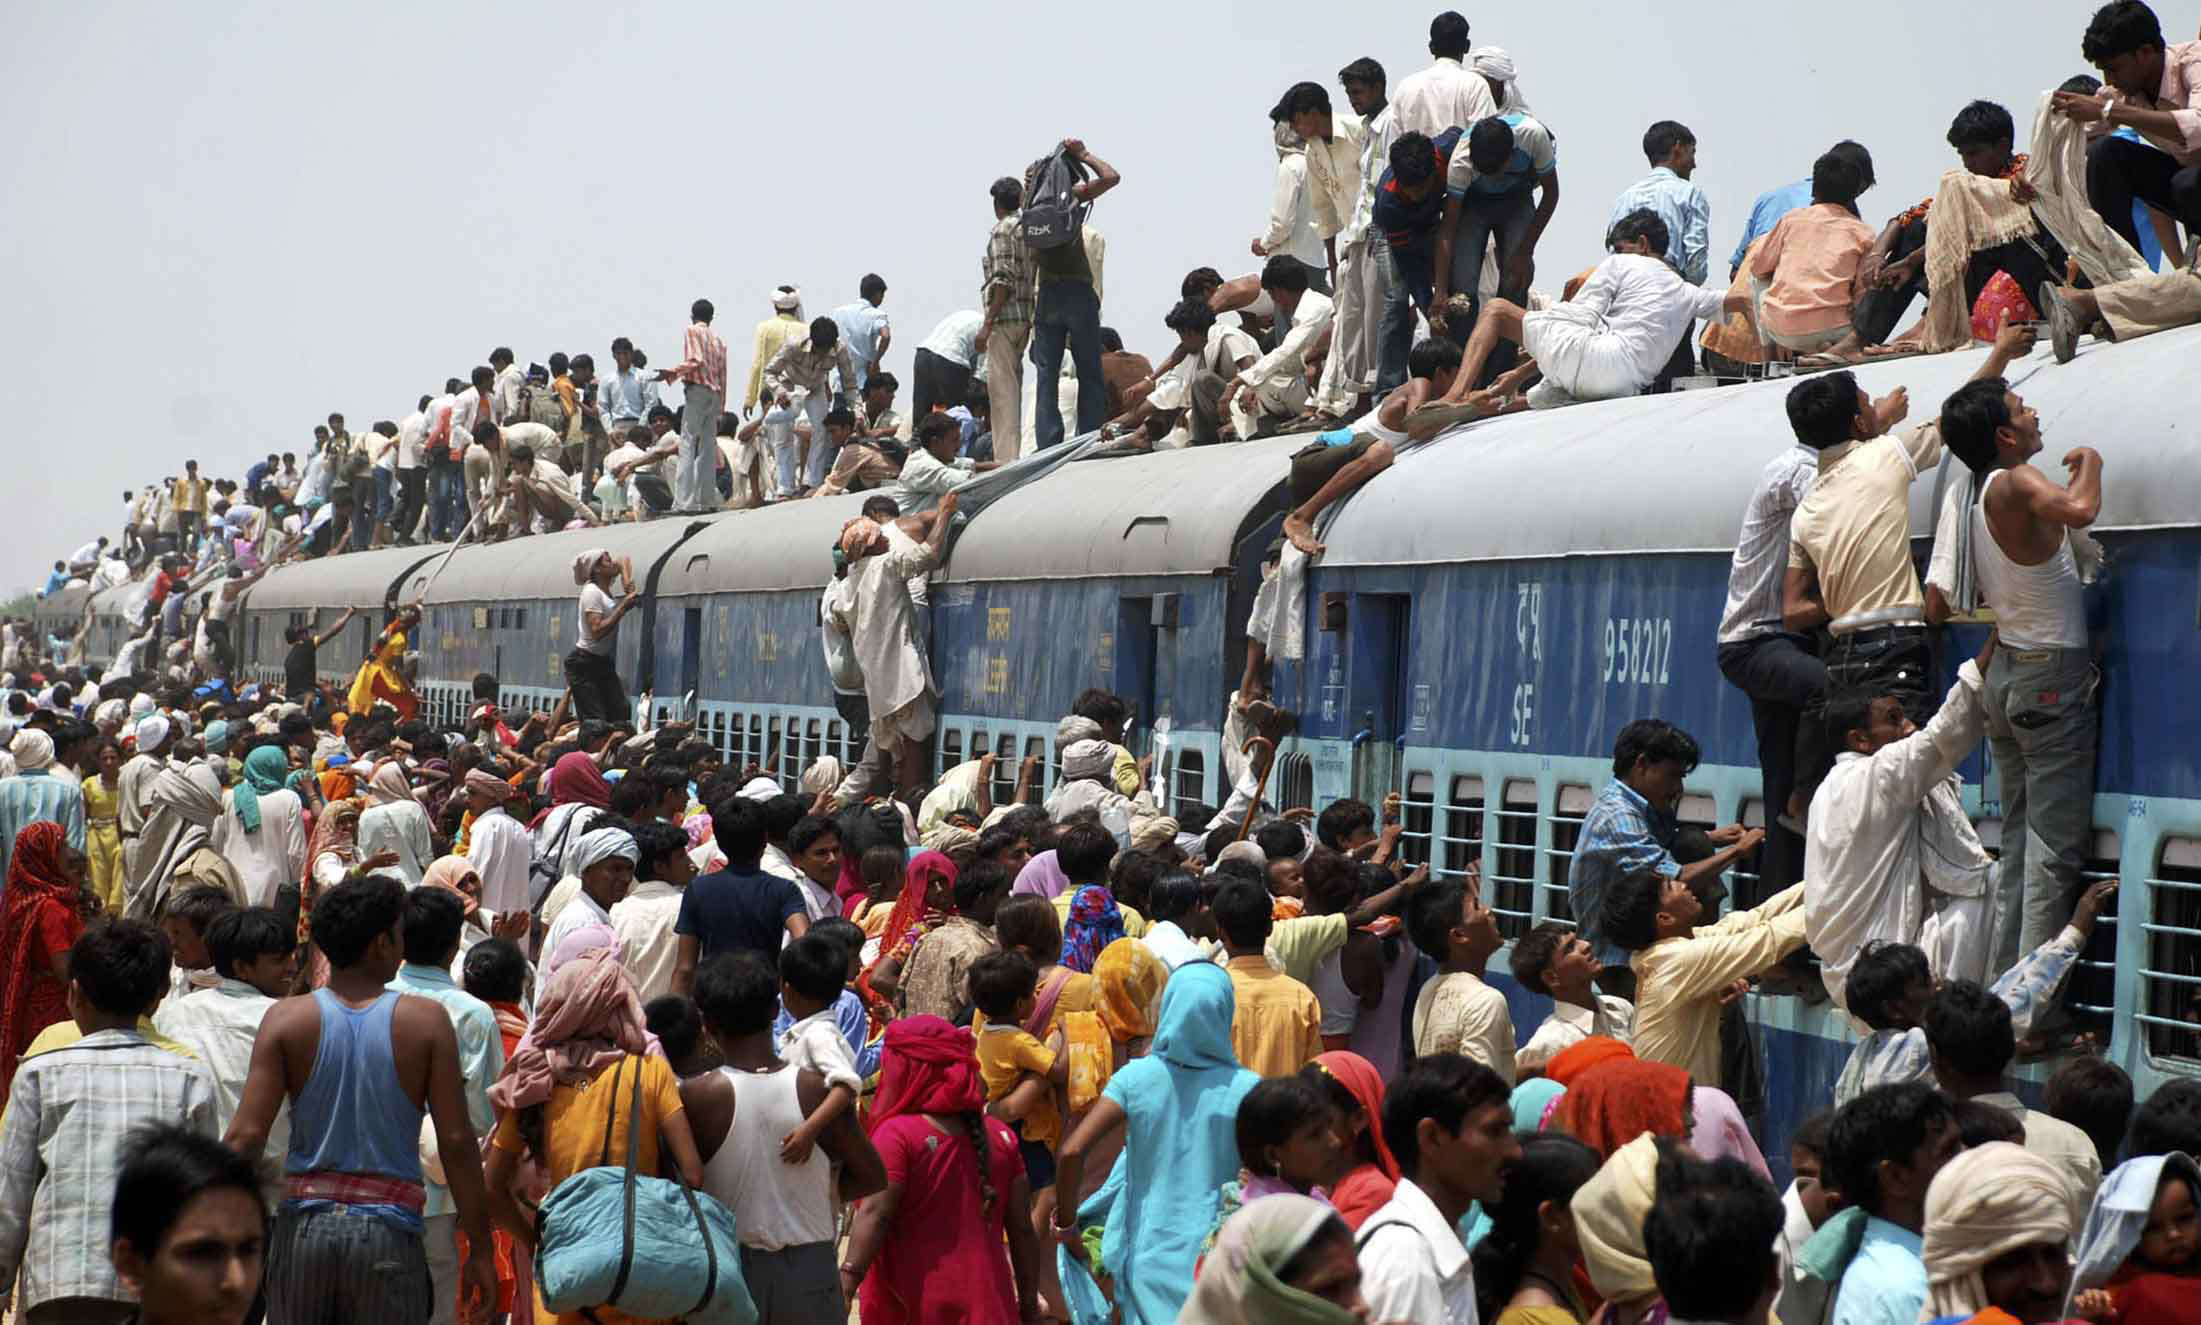 world population day our strength or weakness fiinovation  hindu devotees try to board a crowded passenger train to take part in the guru